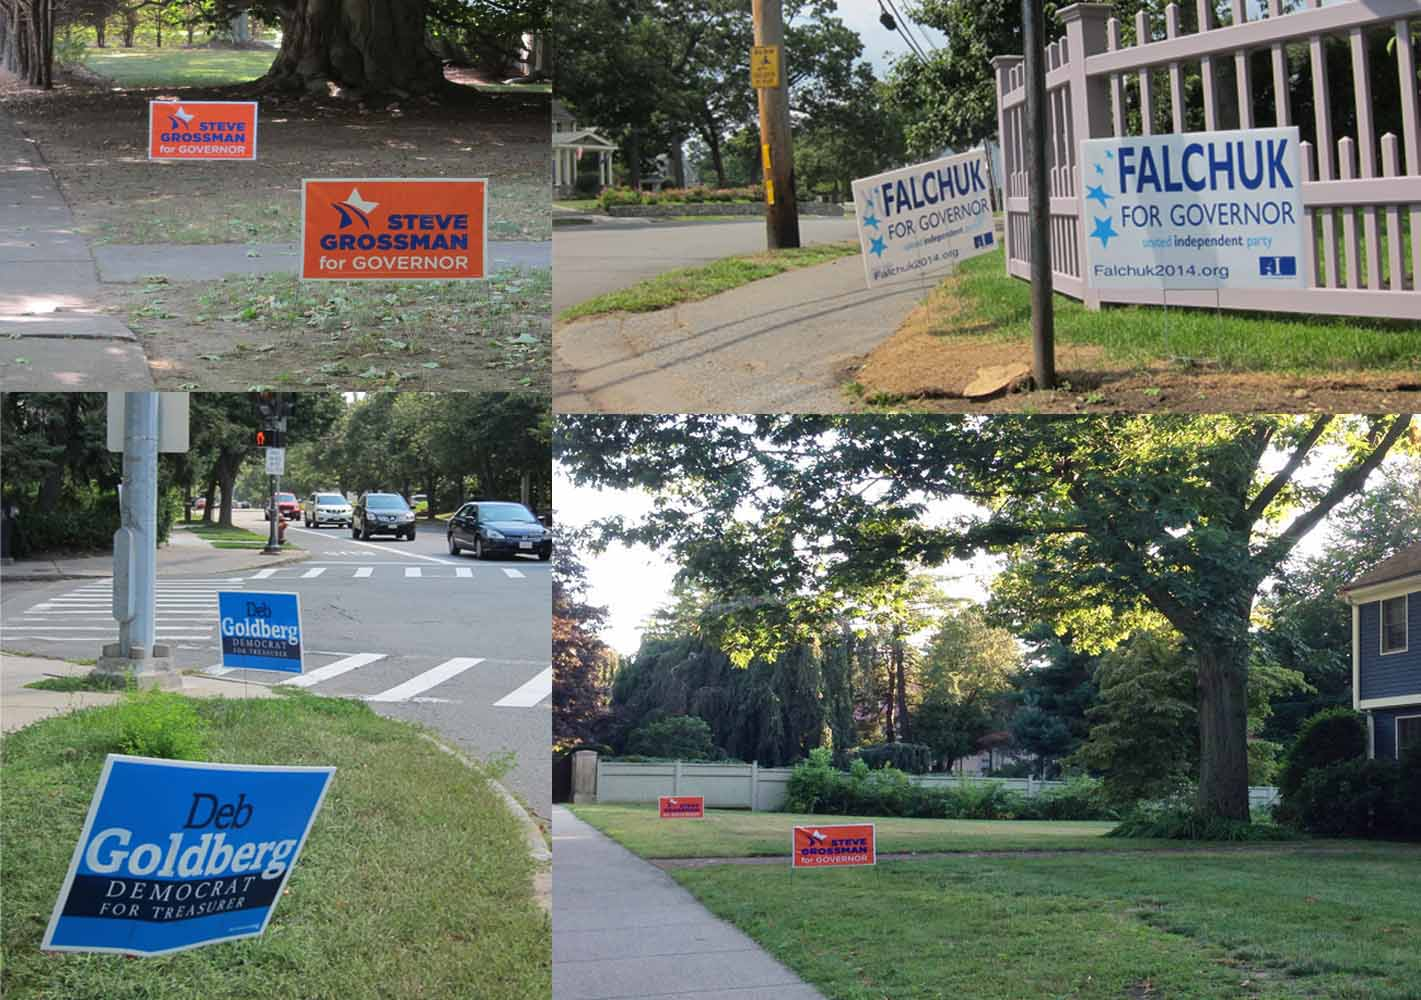 A fun post about political signs